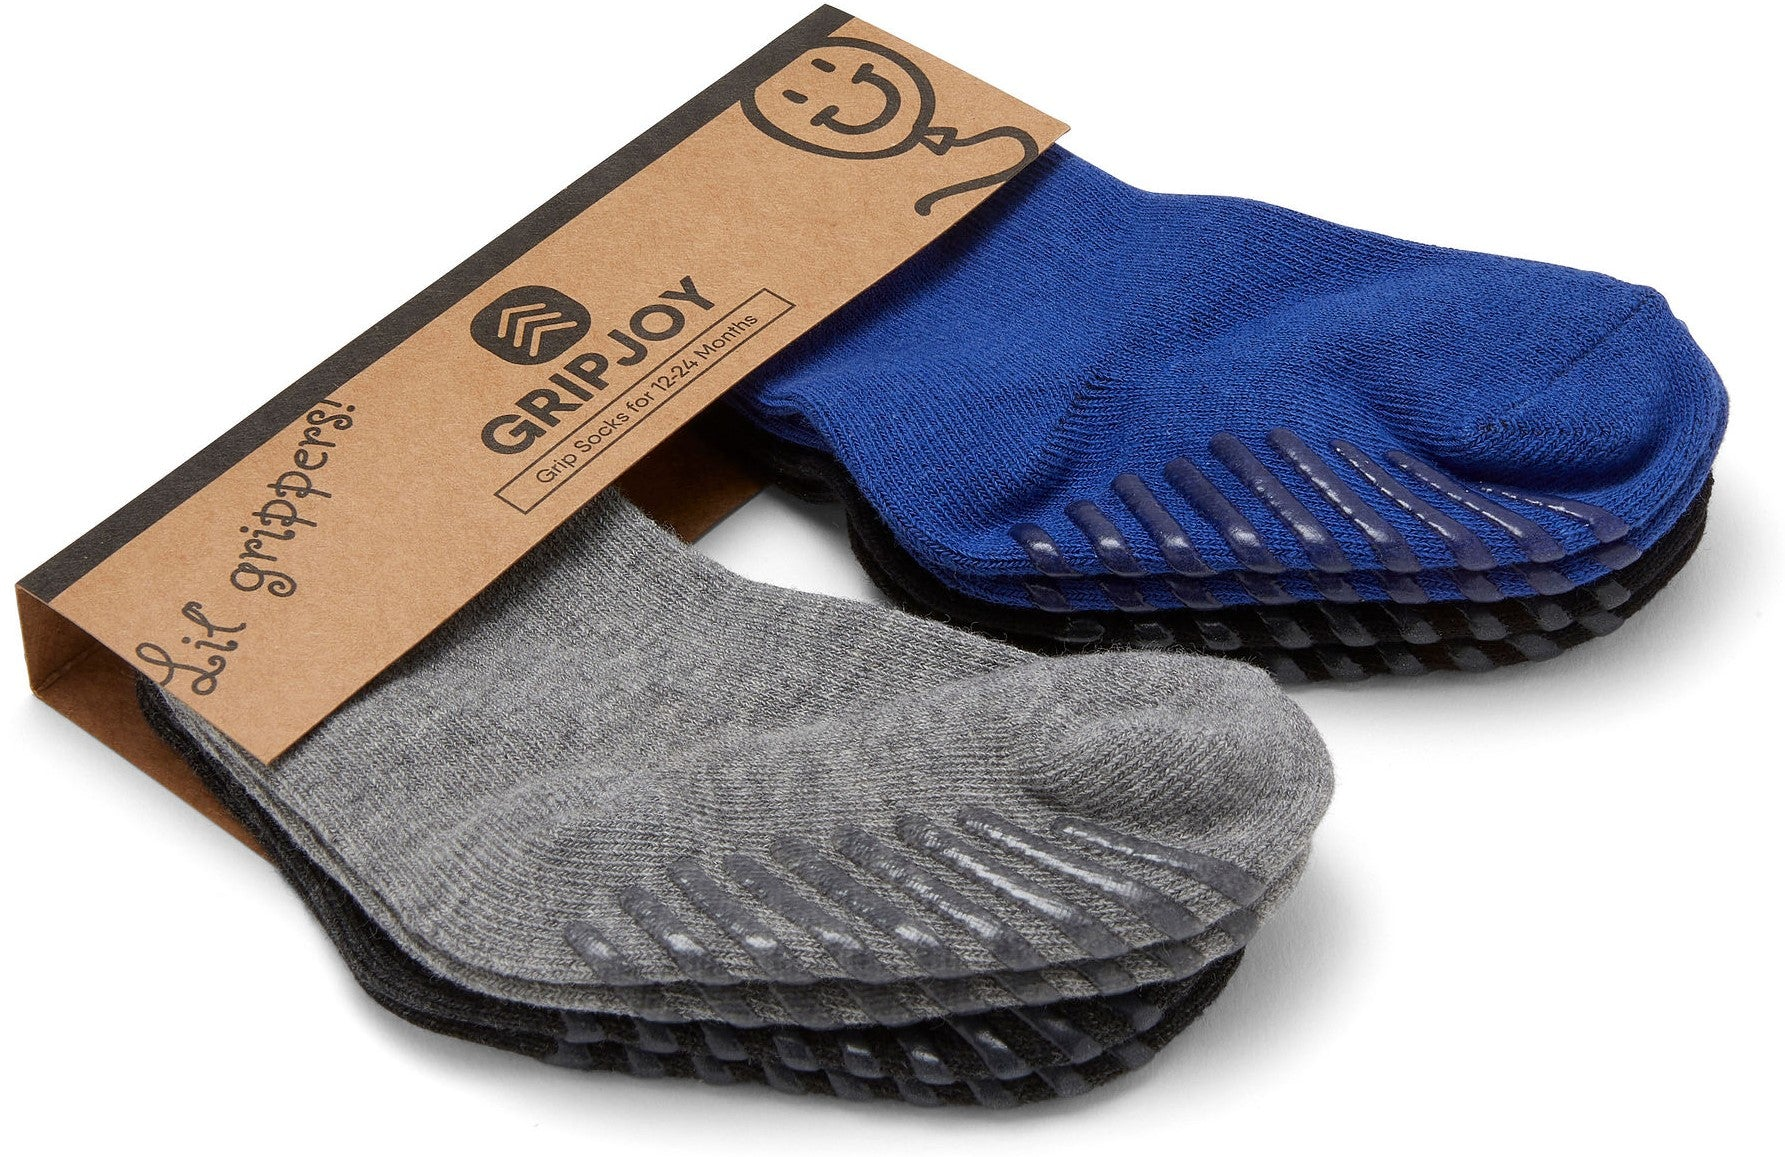 Gripjoy 12-24 Months Boys Toddler Socks with Grips Blue Black & Greys 4-Pack - Gripjoy Socks